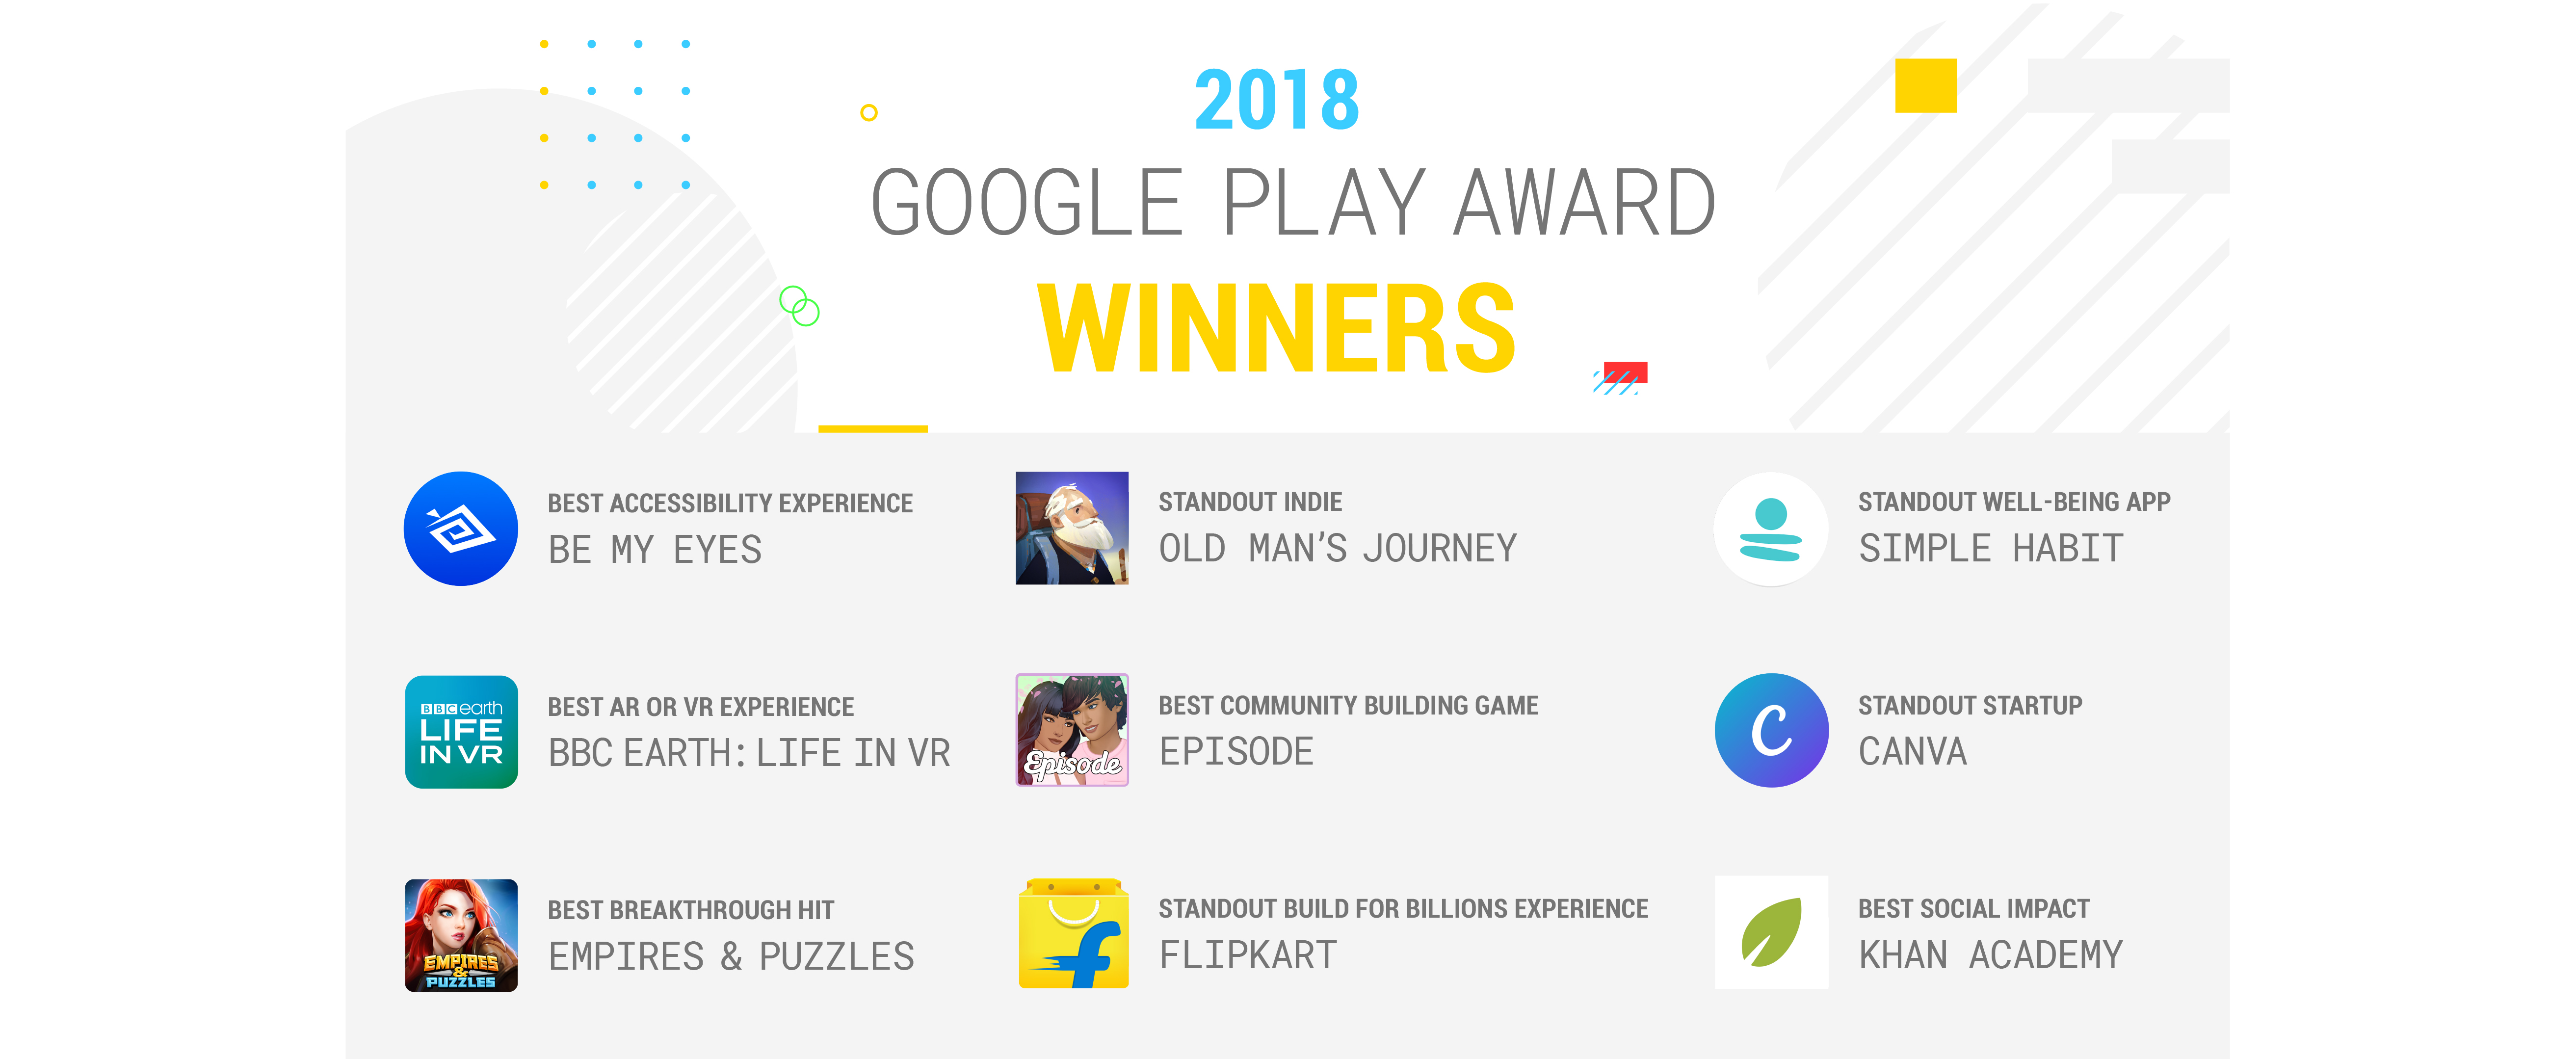 The winners of the 2018 Google Play Awards are